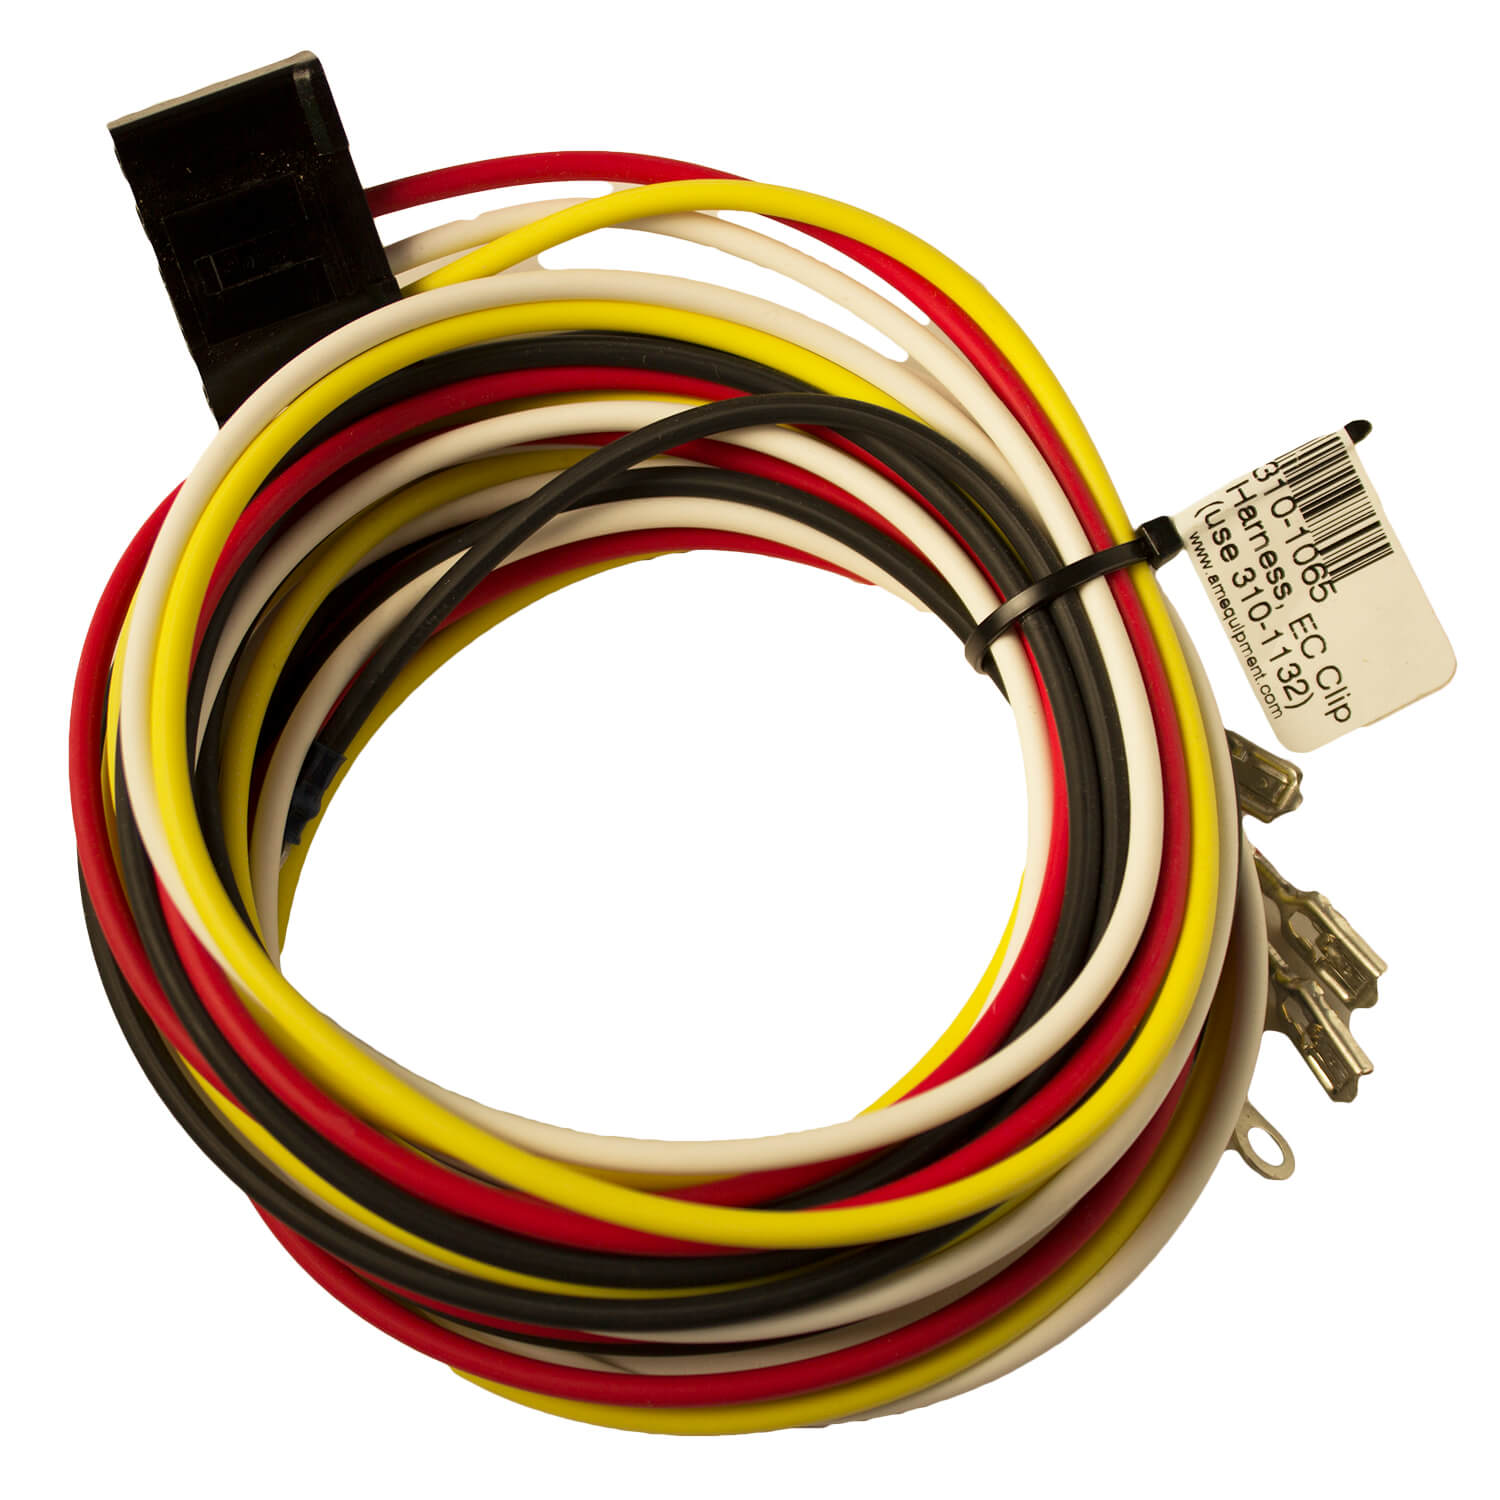 hight resolution of 310 1065 wire harness jpg